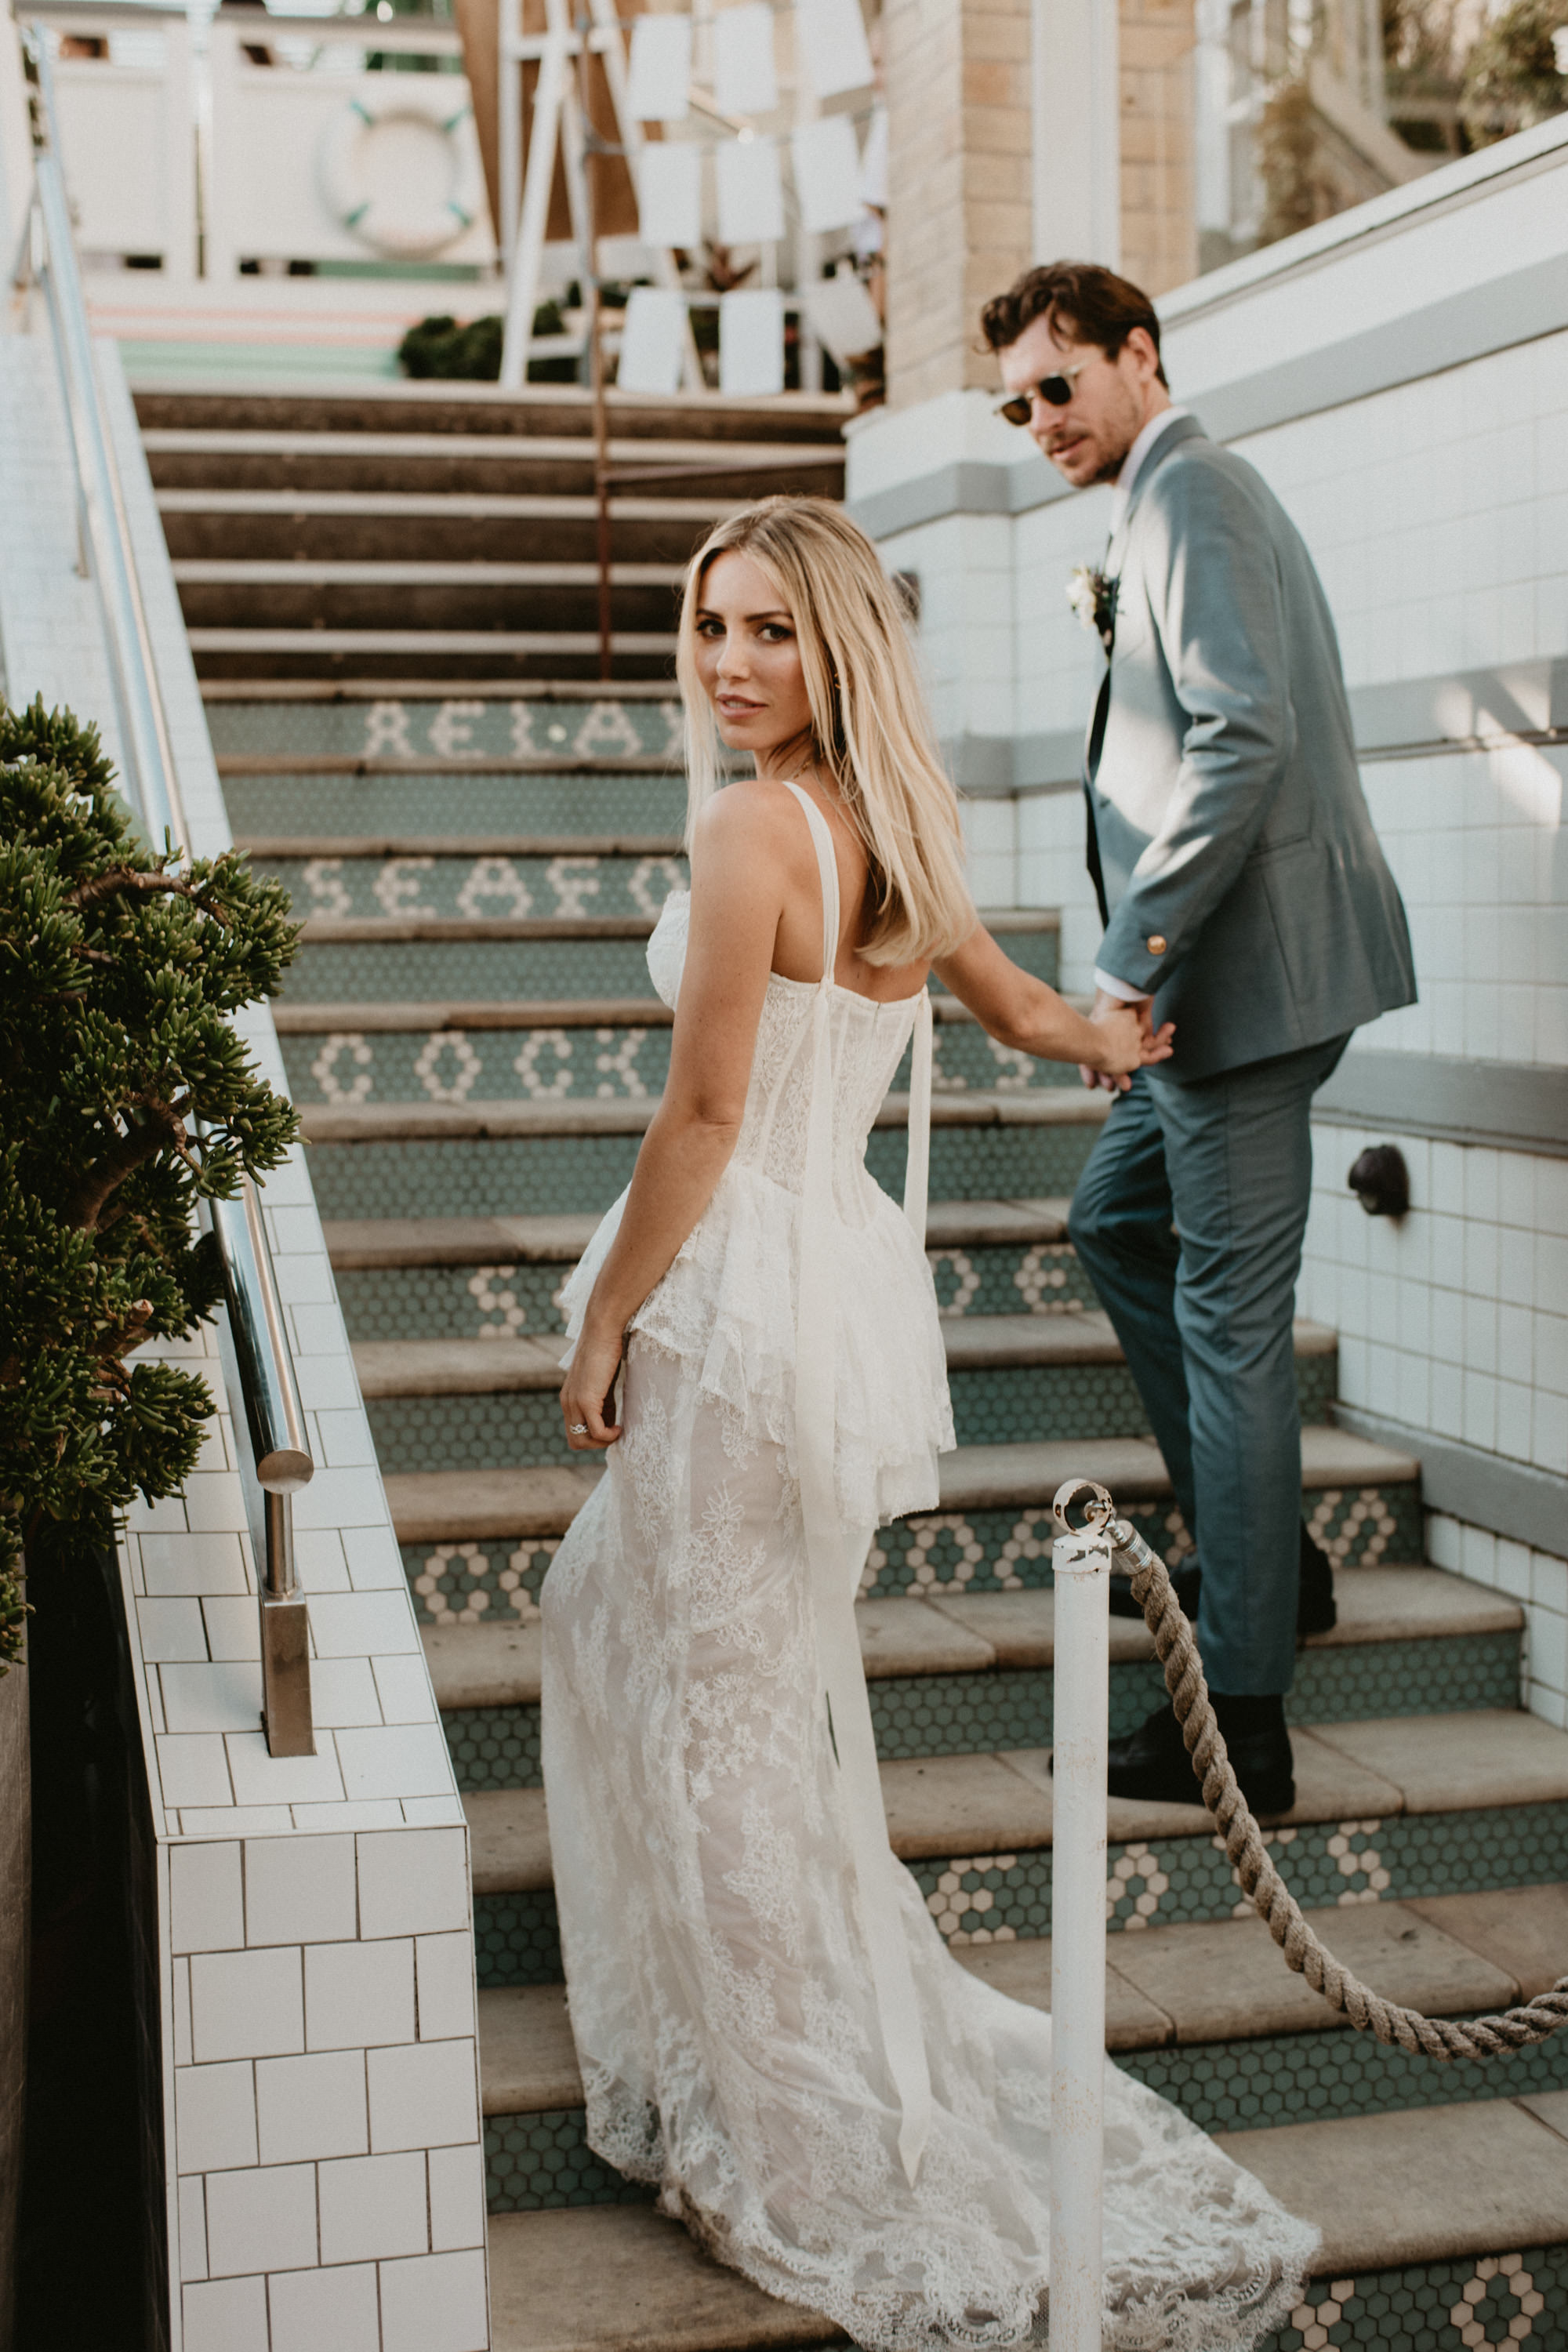 Stone Cold Fox Designer Cydney Morris Shares Her Bridal Beauty Routine